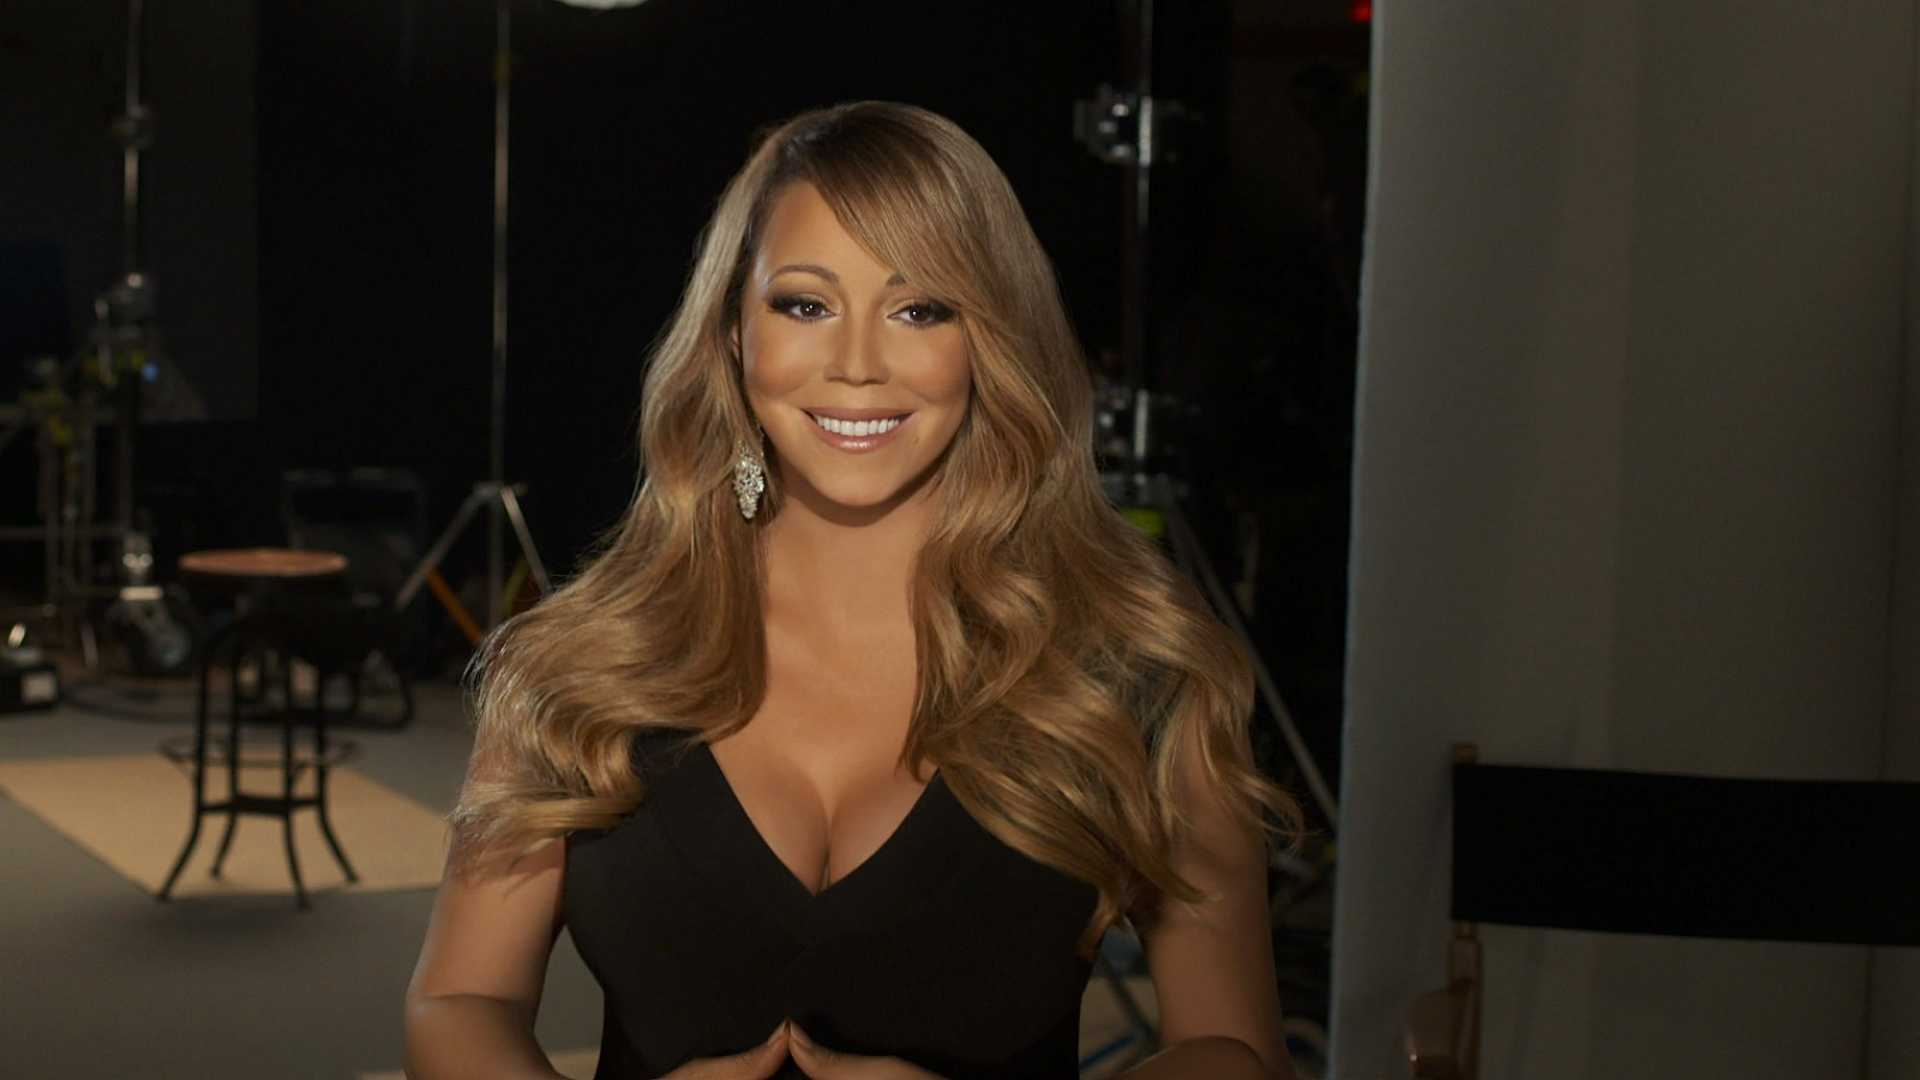 Mariah Carey Lawsuit: Blackmail, Sexual Battery, Pee, and a $328,500 Salary